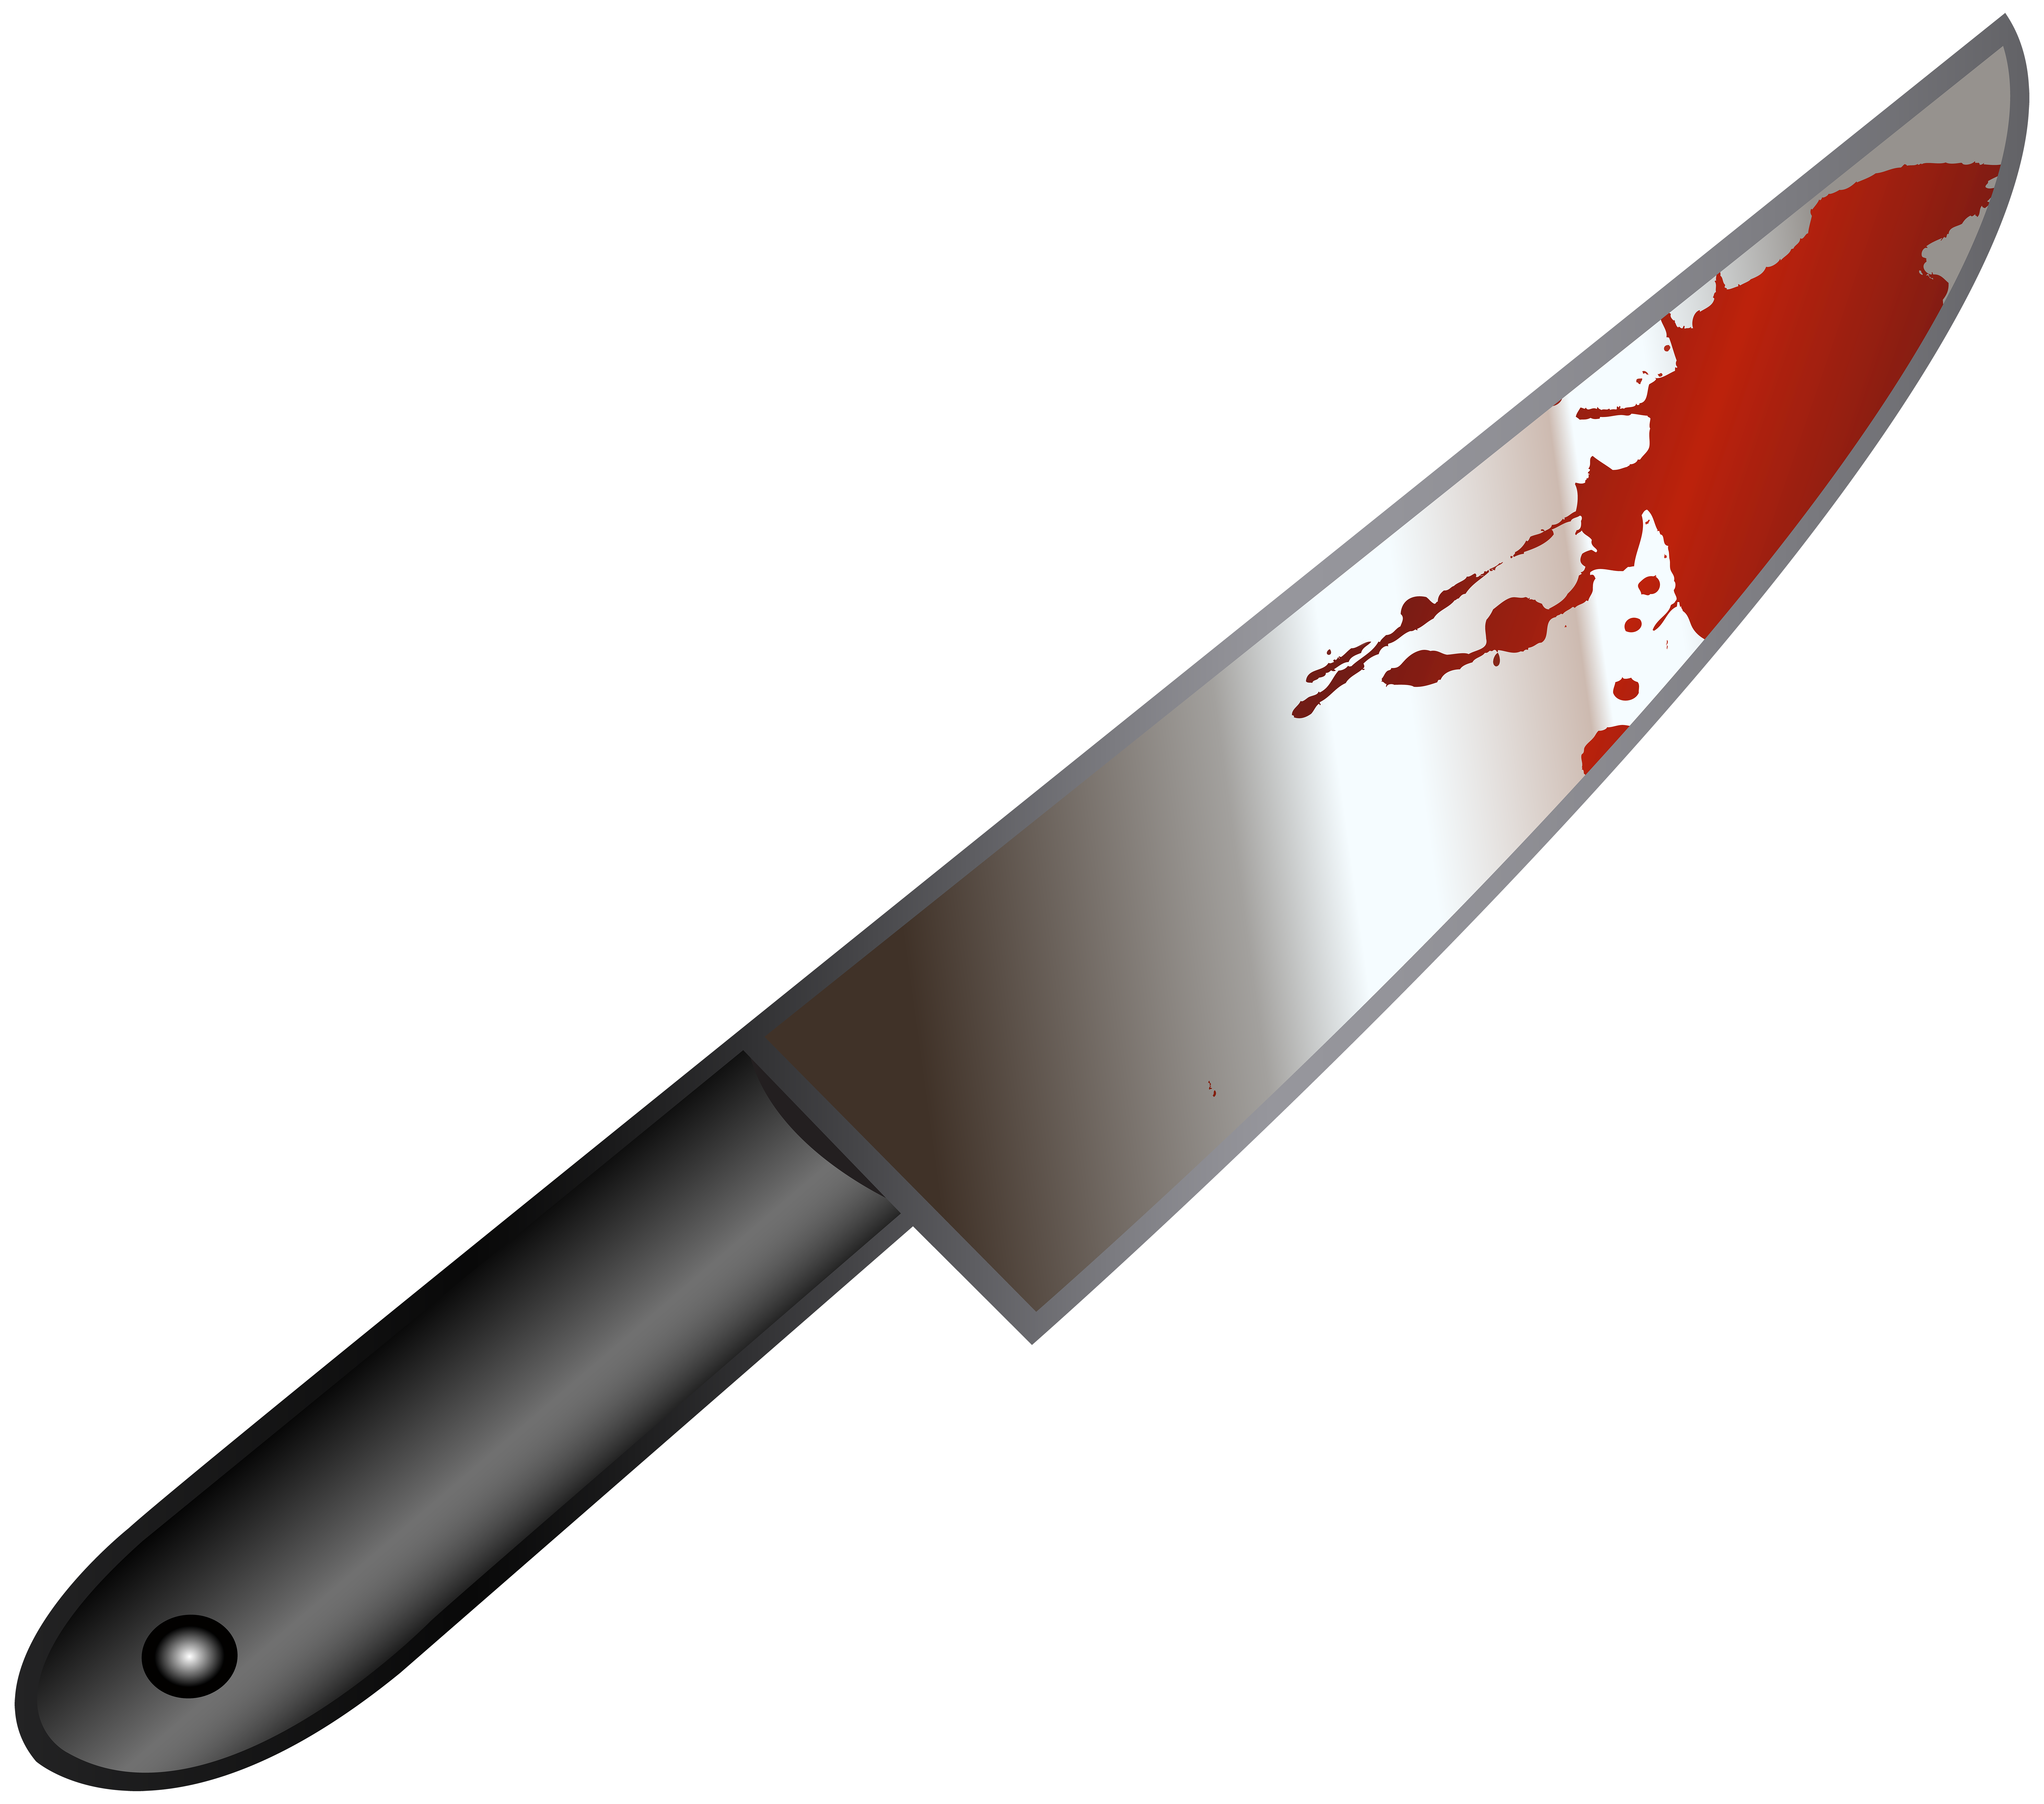 Knife clipart. Bloody dagger images gallery